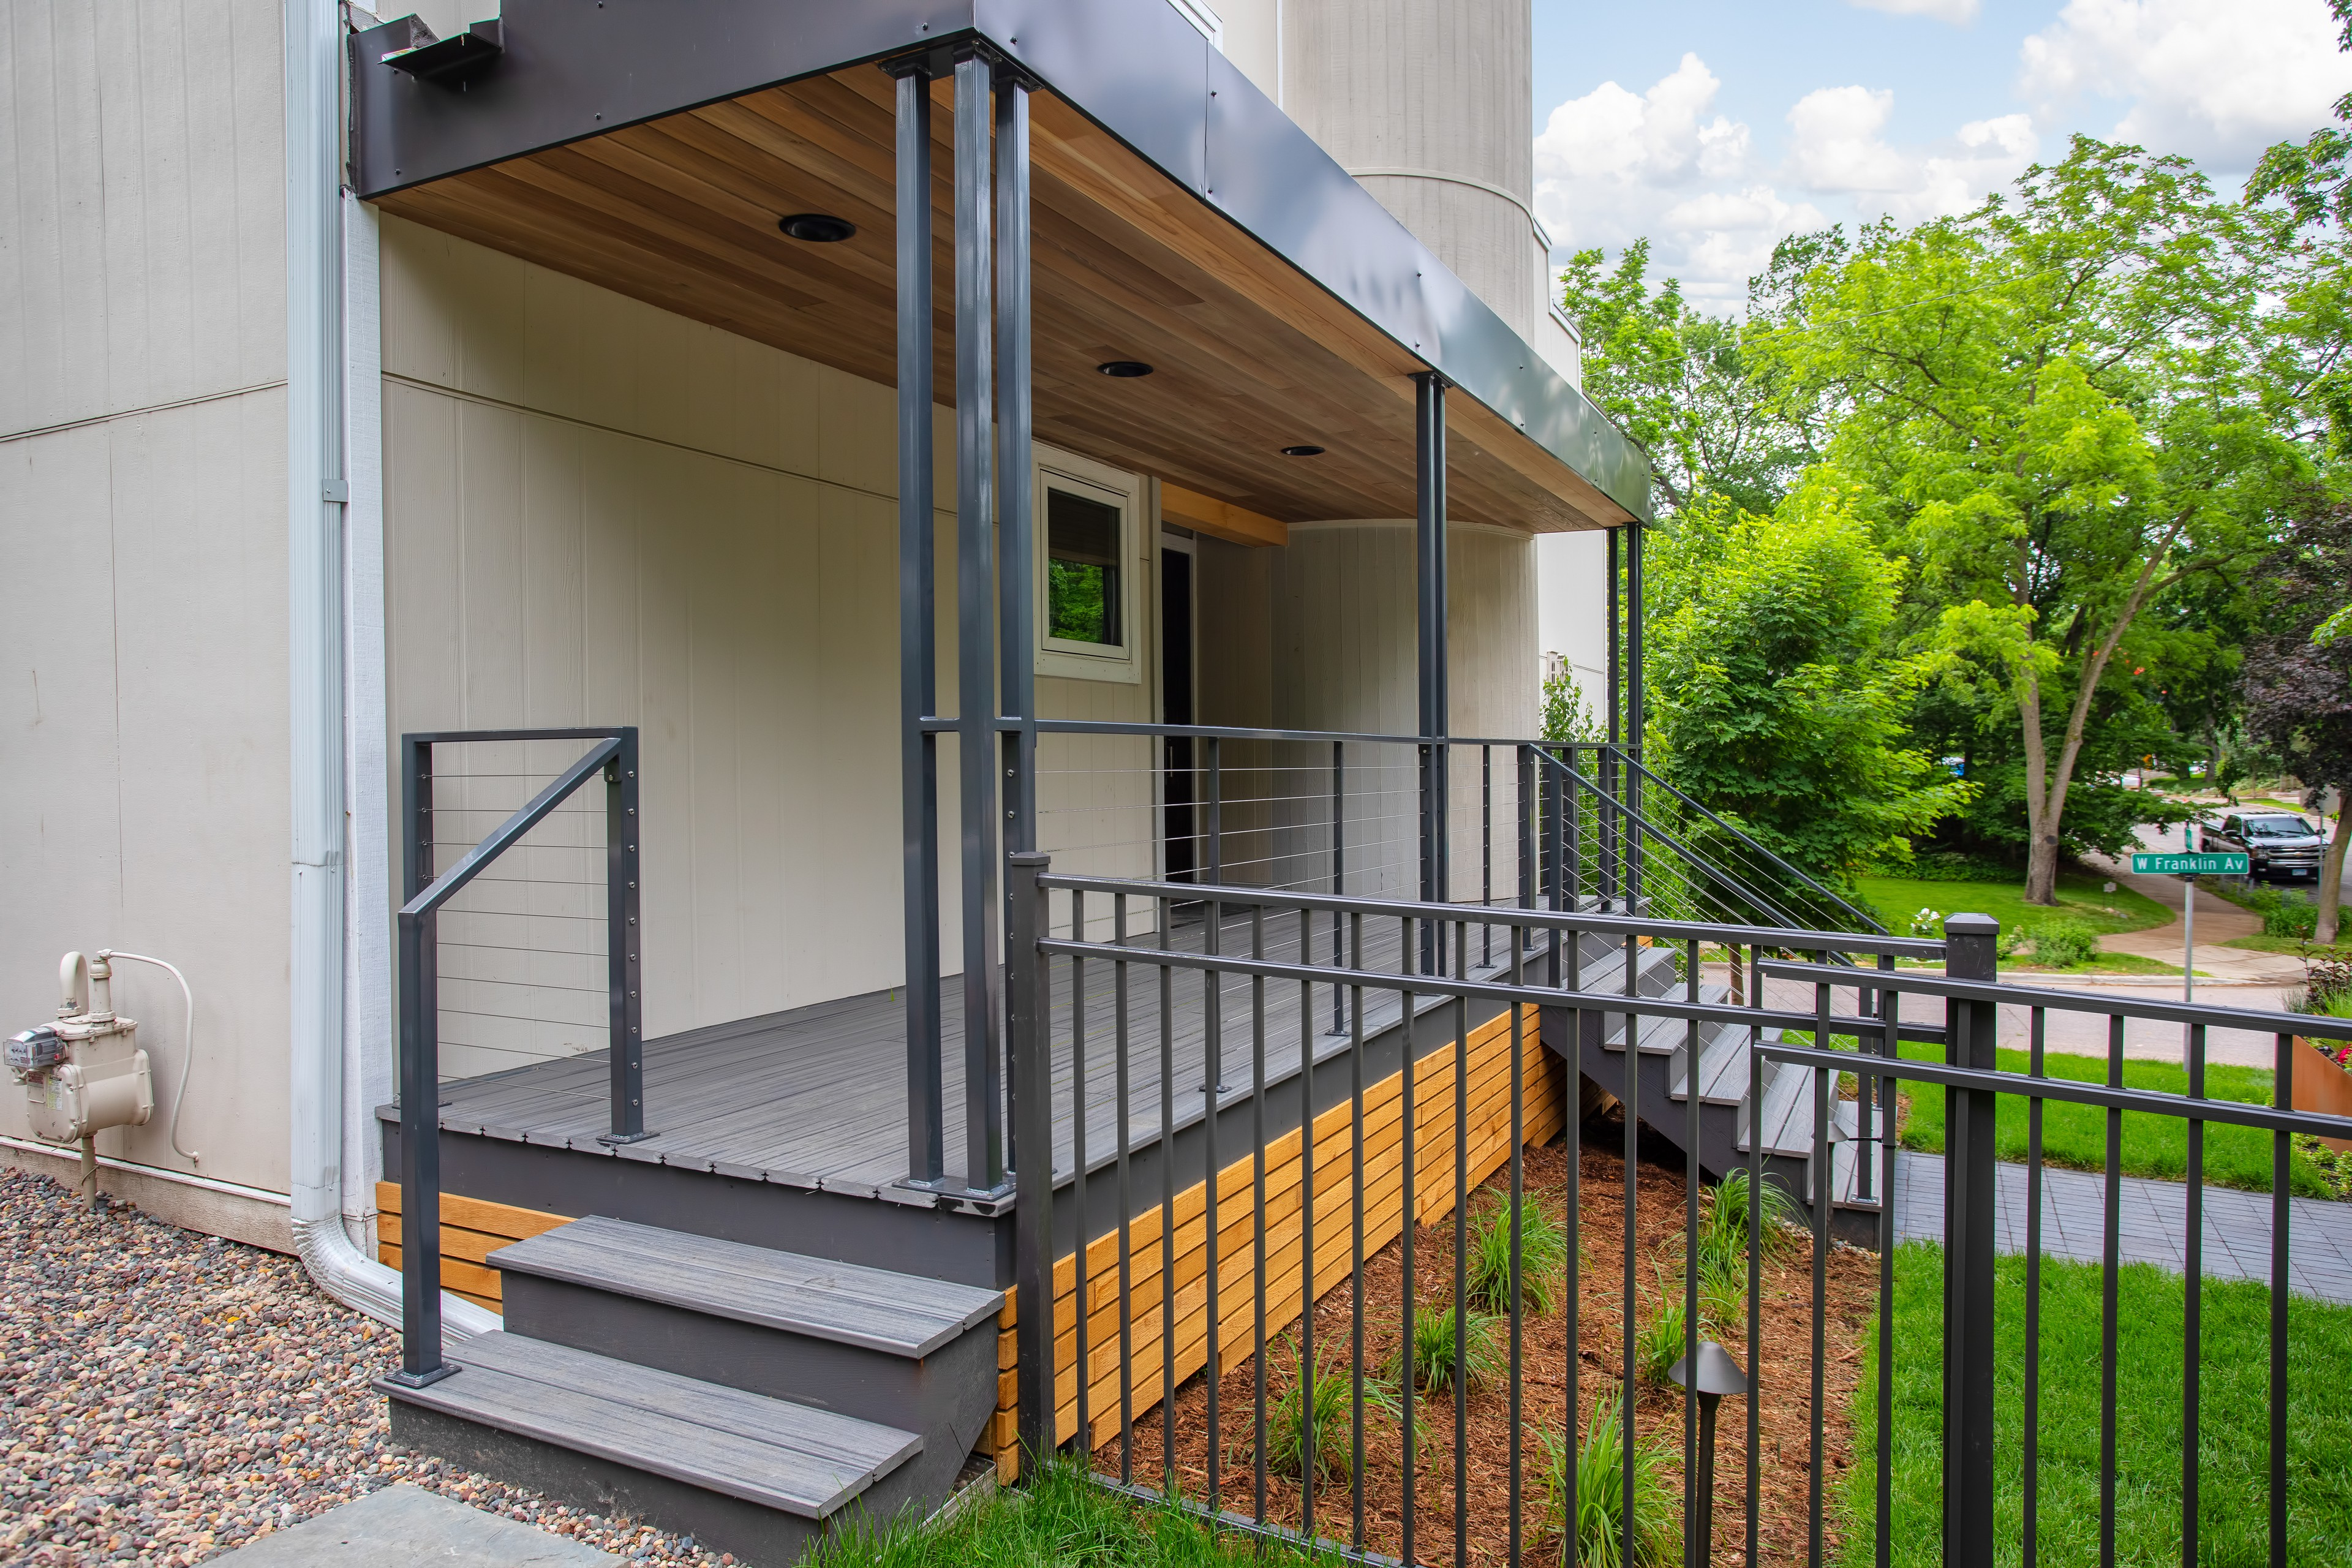 18 Beautiful Modern Porch Pictures Ideas October 2020 Houzz